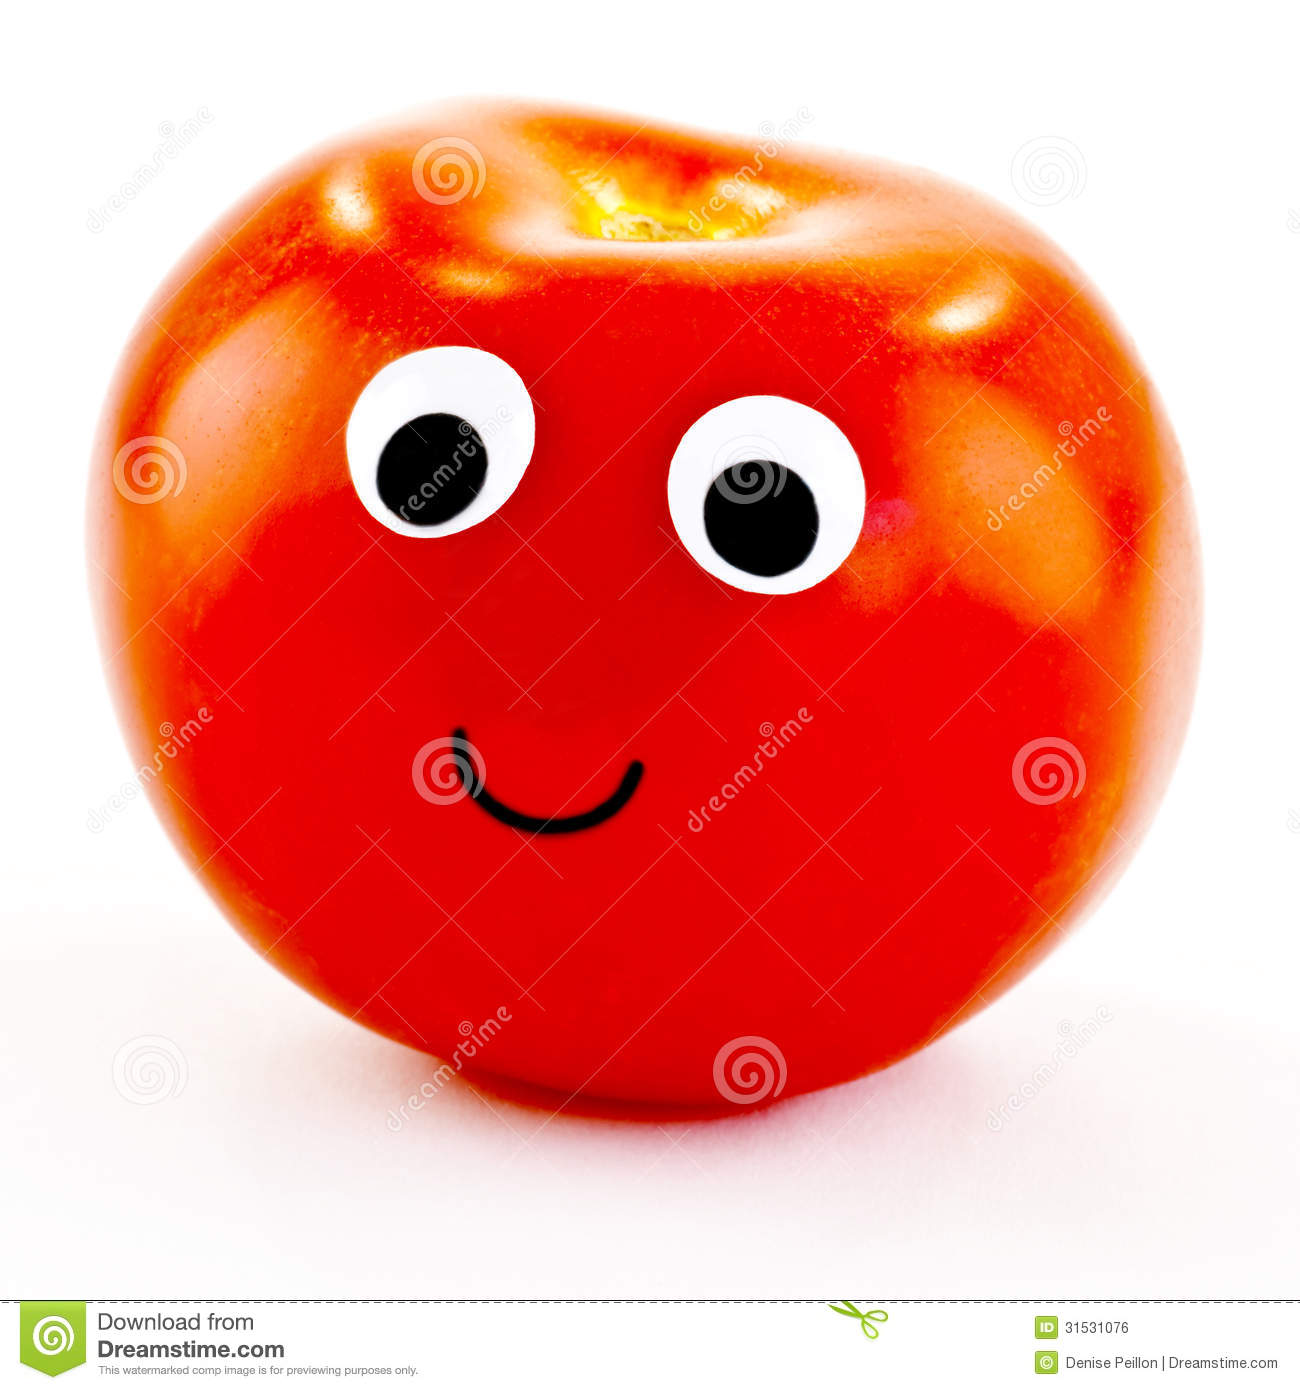 Tomato With Happy Face Royalty Free Stock Image - Image: 31531076